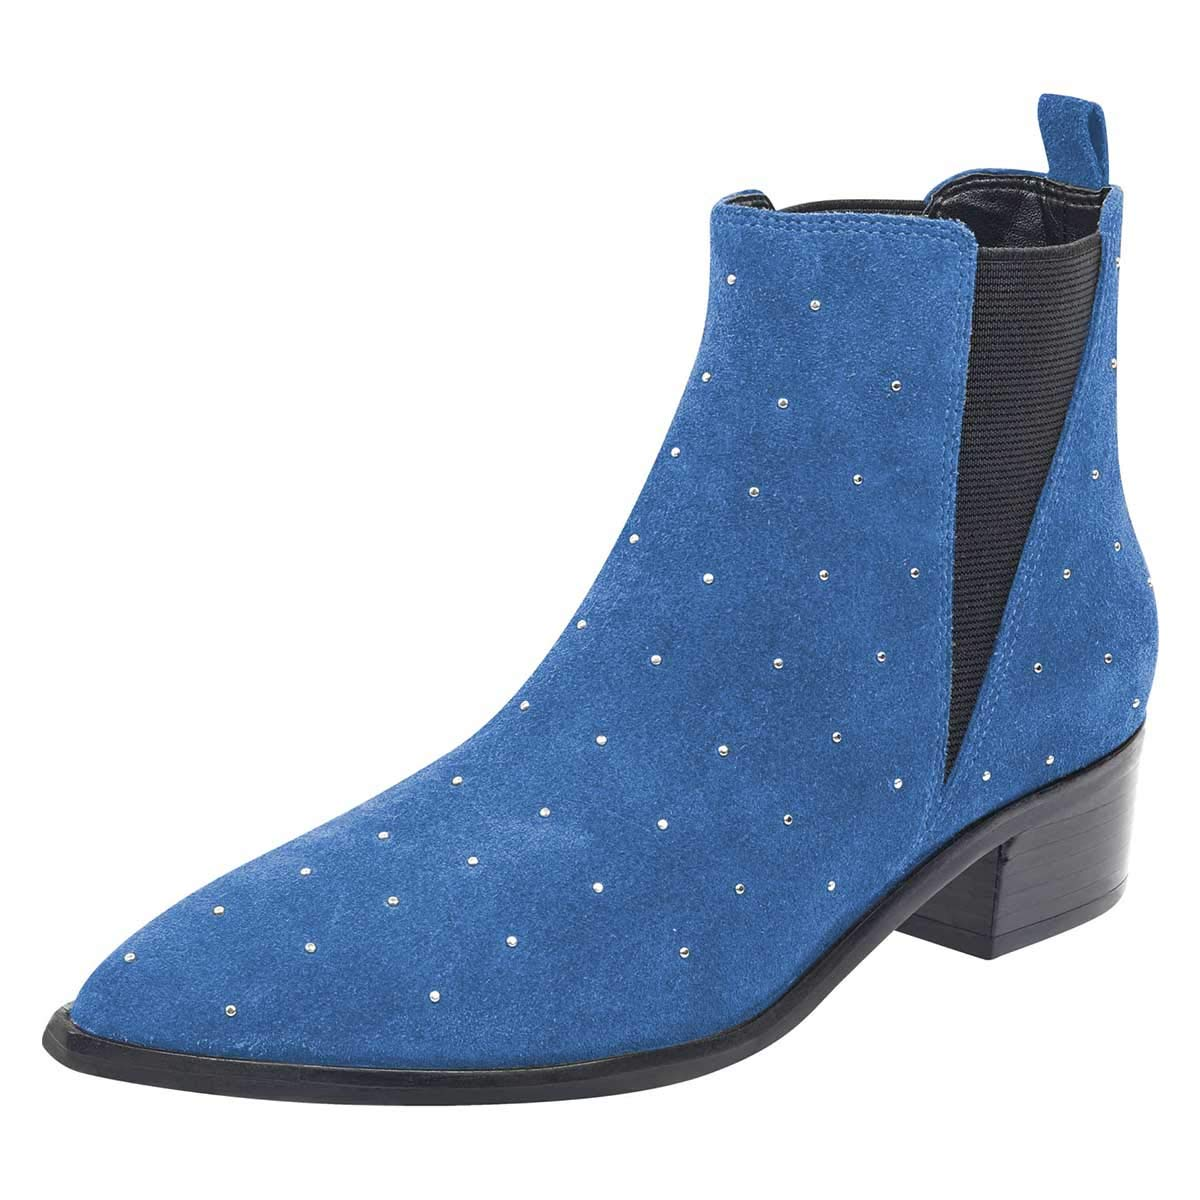 bluee FSJ Women Pointed Toe Studded Chelsea Boots Block Low Heels Comfortable Suede Ankle Booties Size 4-15 US